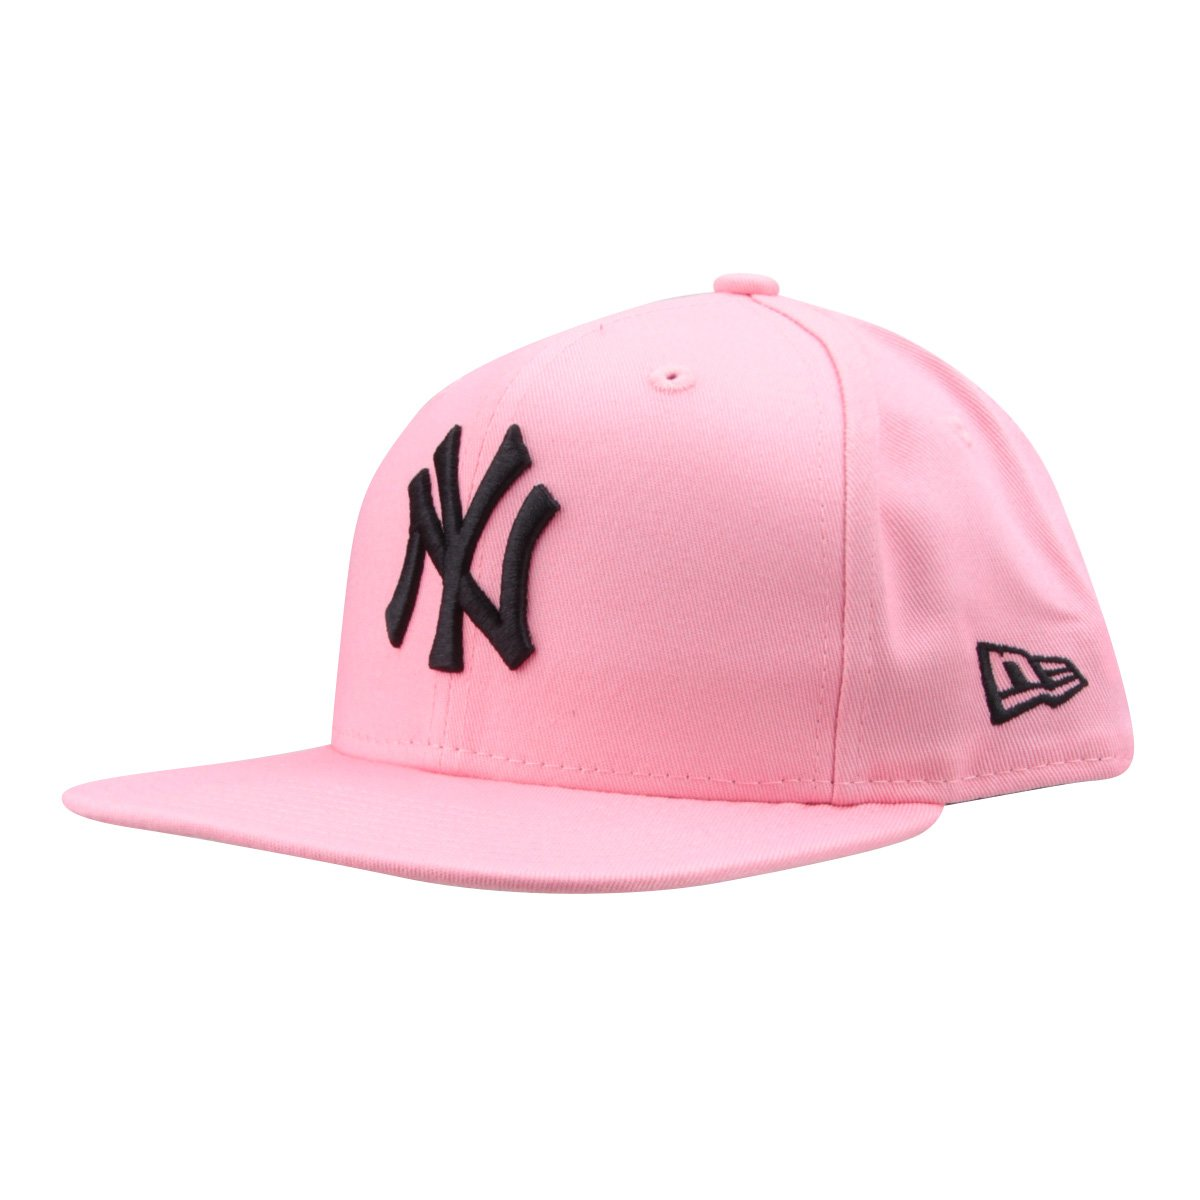 Boné New Era MLB New York Yankees Aba Reta Fit - Compre Agora  a3998aa6520